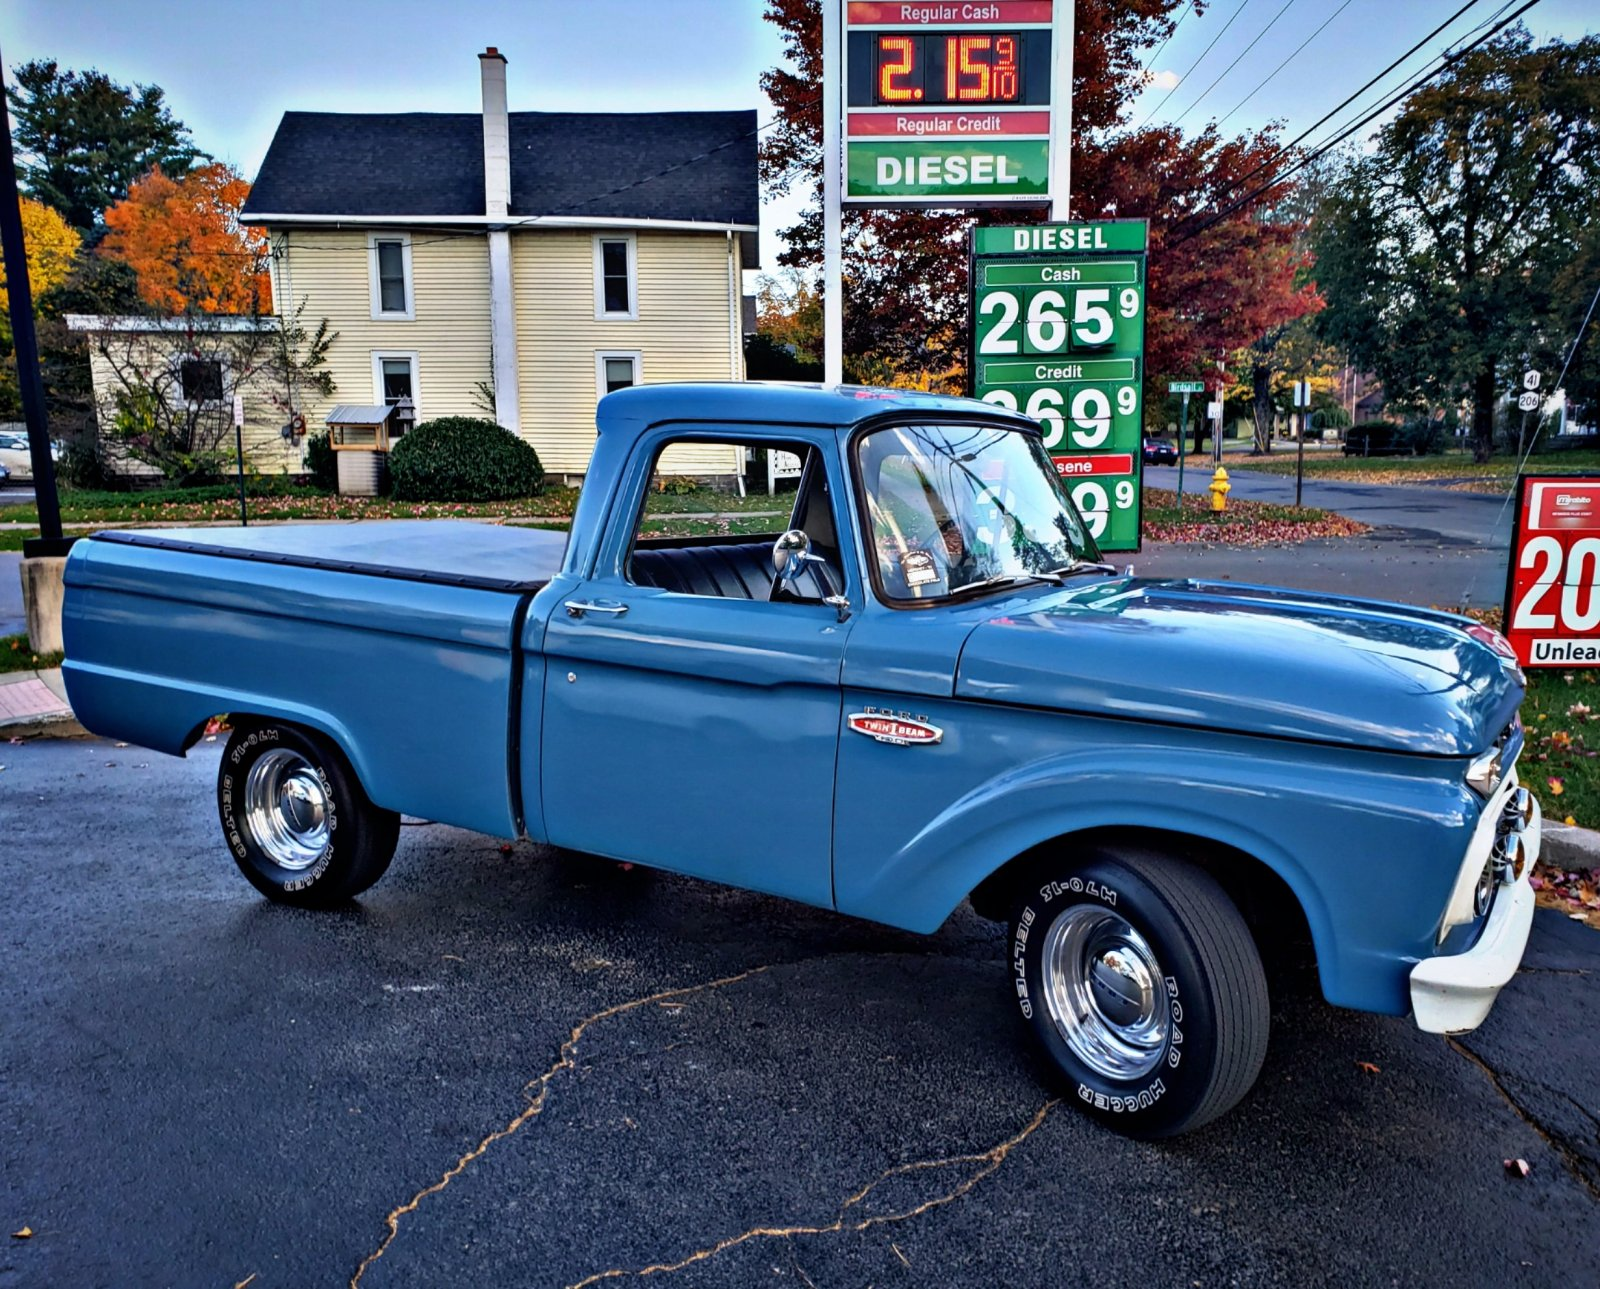 1966 Ford F100 Story About Truck Owner Chris F. 4.jpg